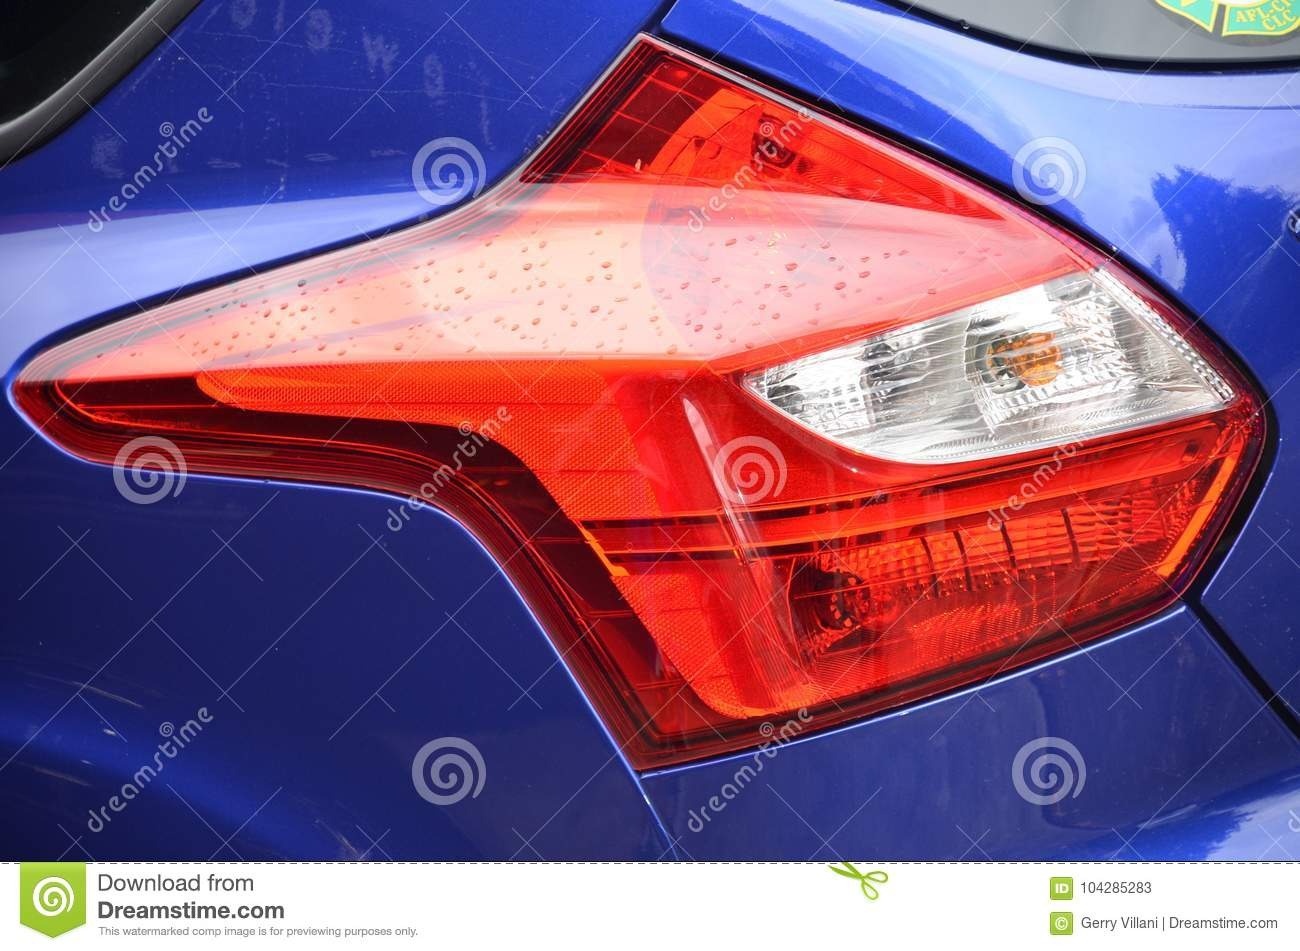 Red Tail Light on Blue Car